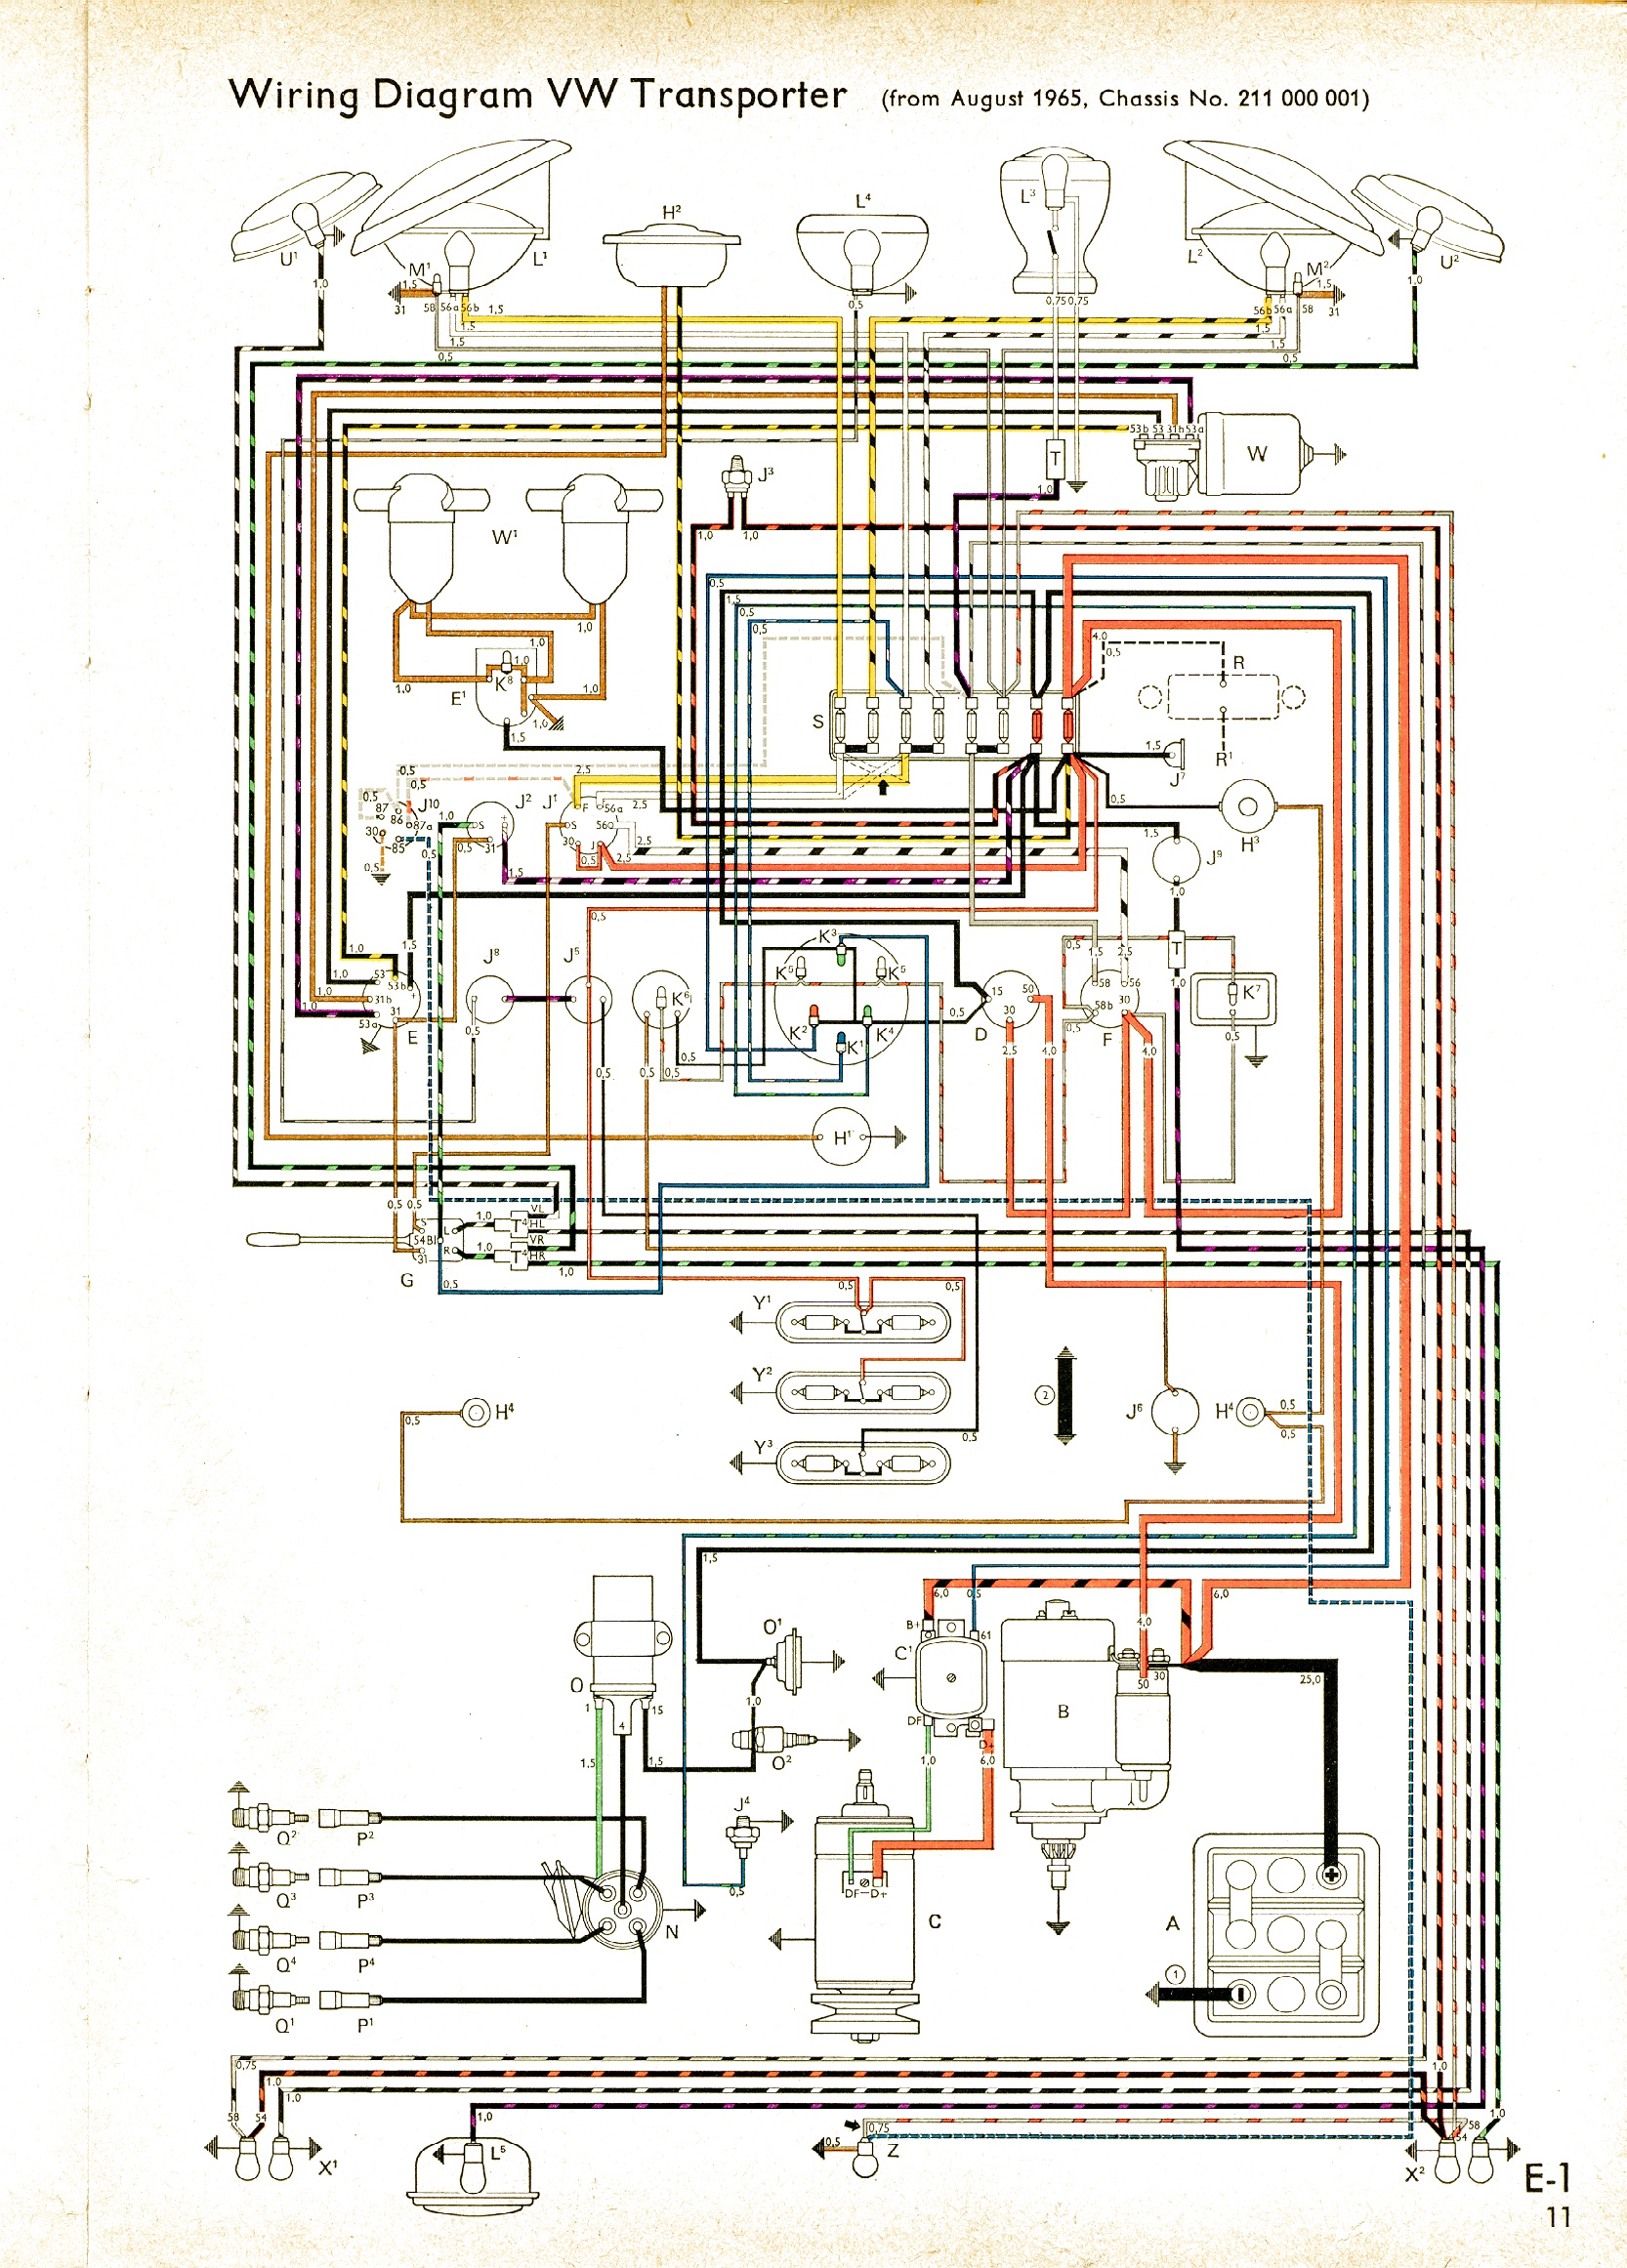 bus 65 bus wiring diagram vw wiring harness diagram \u2022 wiring diagrams j 1971 vw bus wiring diagram at webbmarketing.co